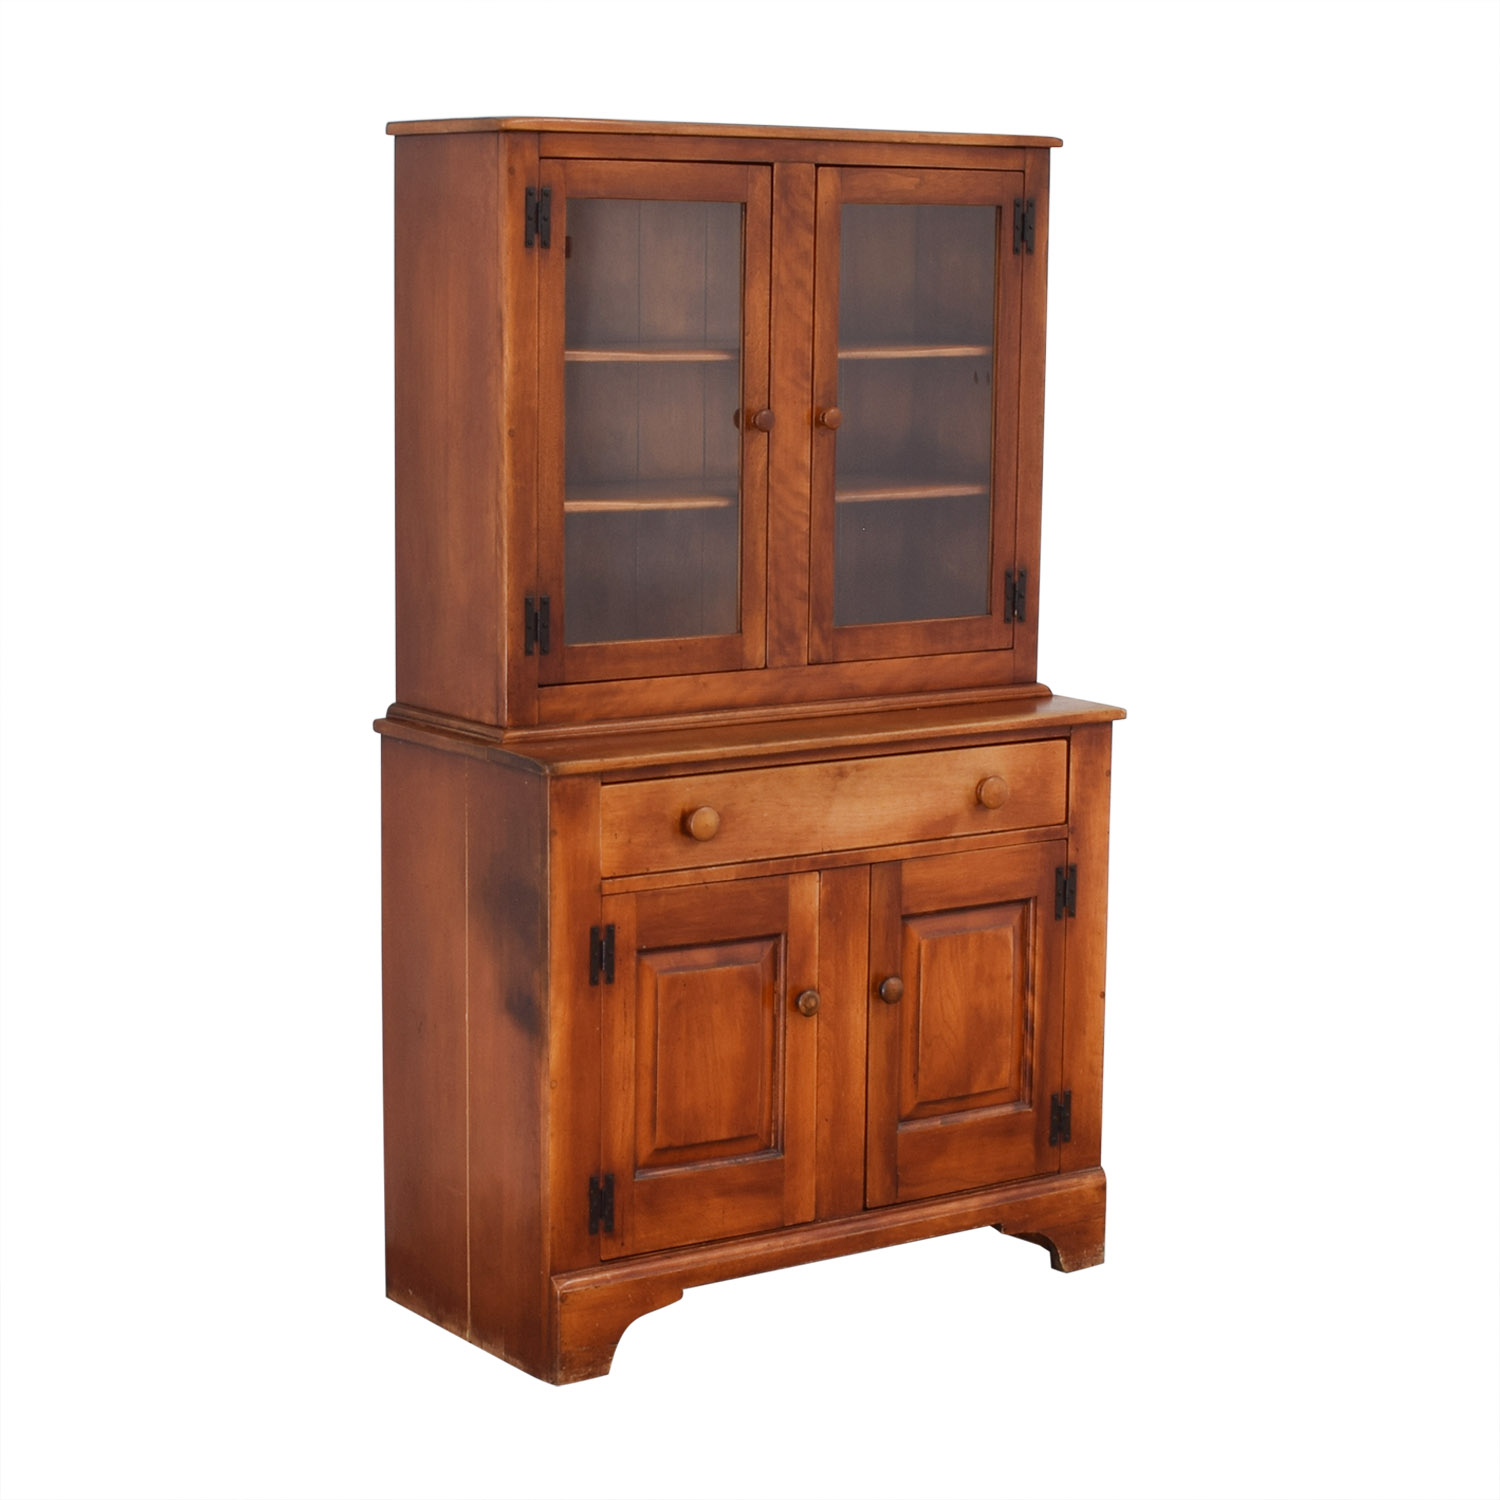 Cushman Colonial Cushman Colonial China Cabinet with Hutch ct